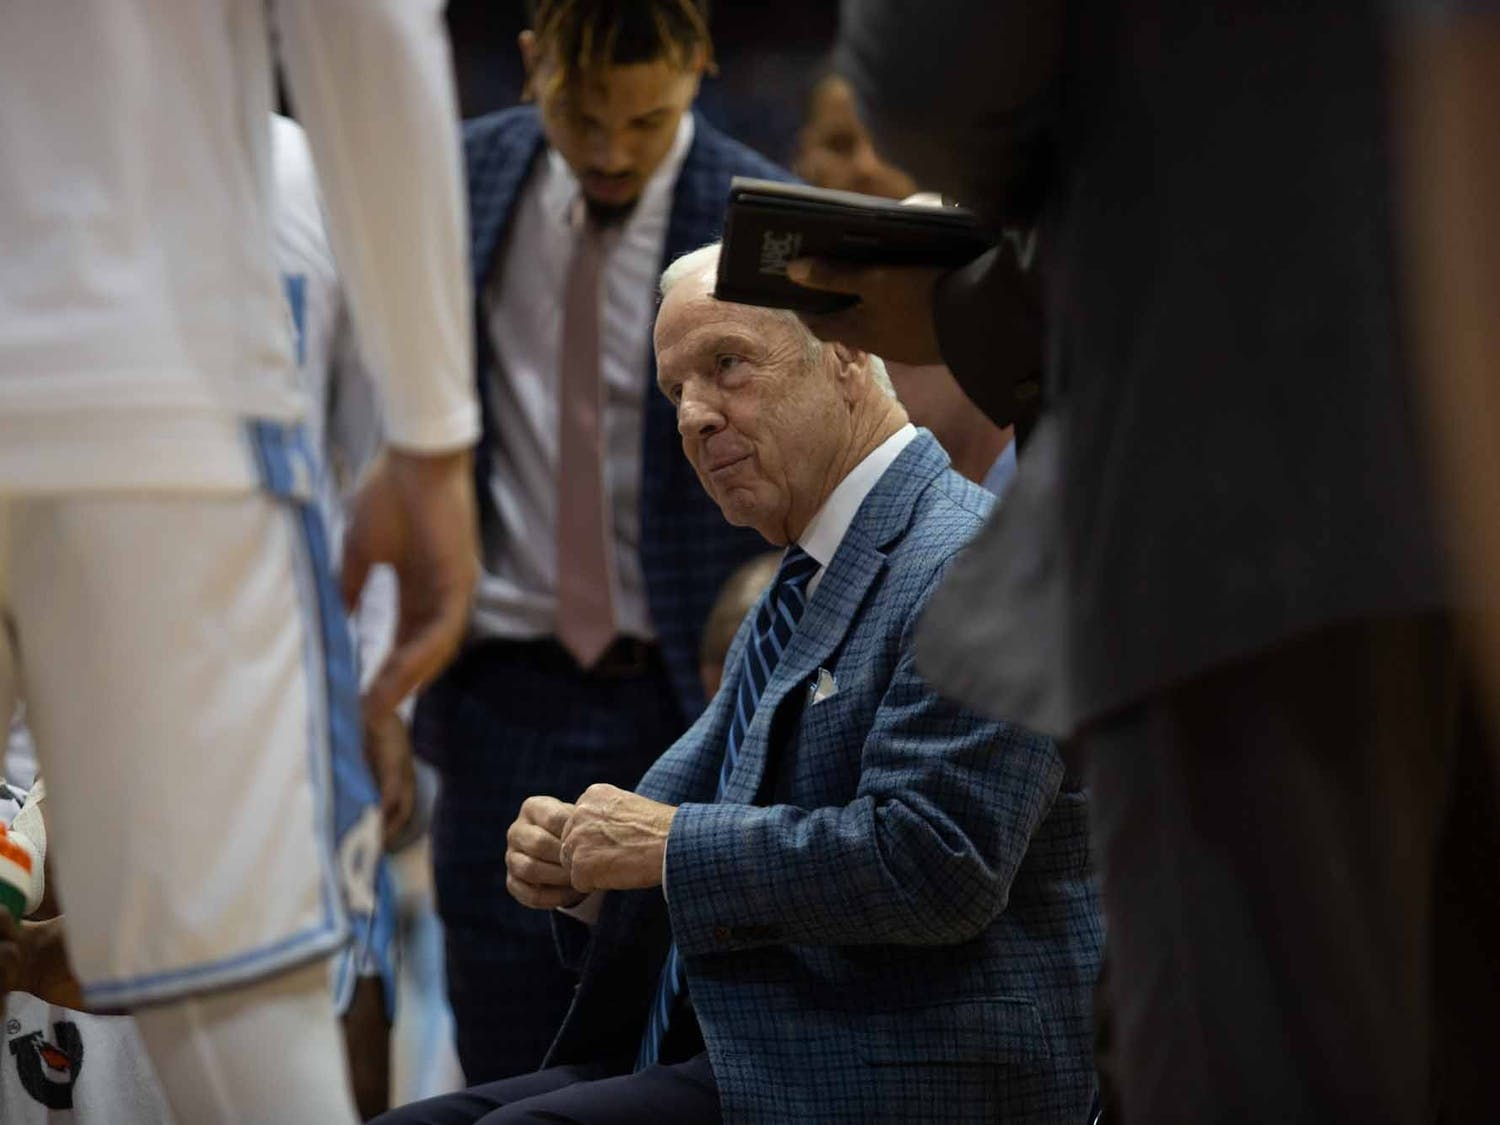 Head Coach Roy Williams talks to the players during a timeout against Clemson. UNC lost to Clemson 79-76, ending the Tigers 0-59 losing streak in Chapel Hill.